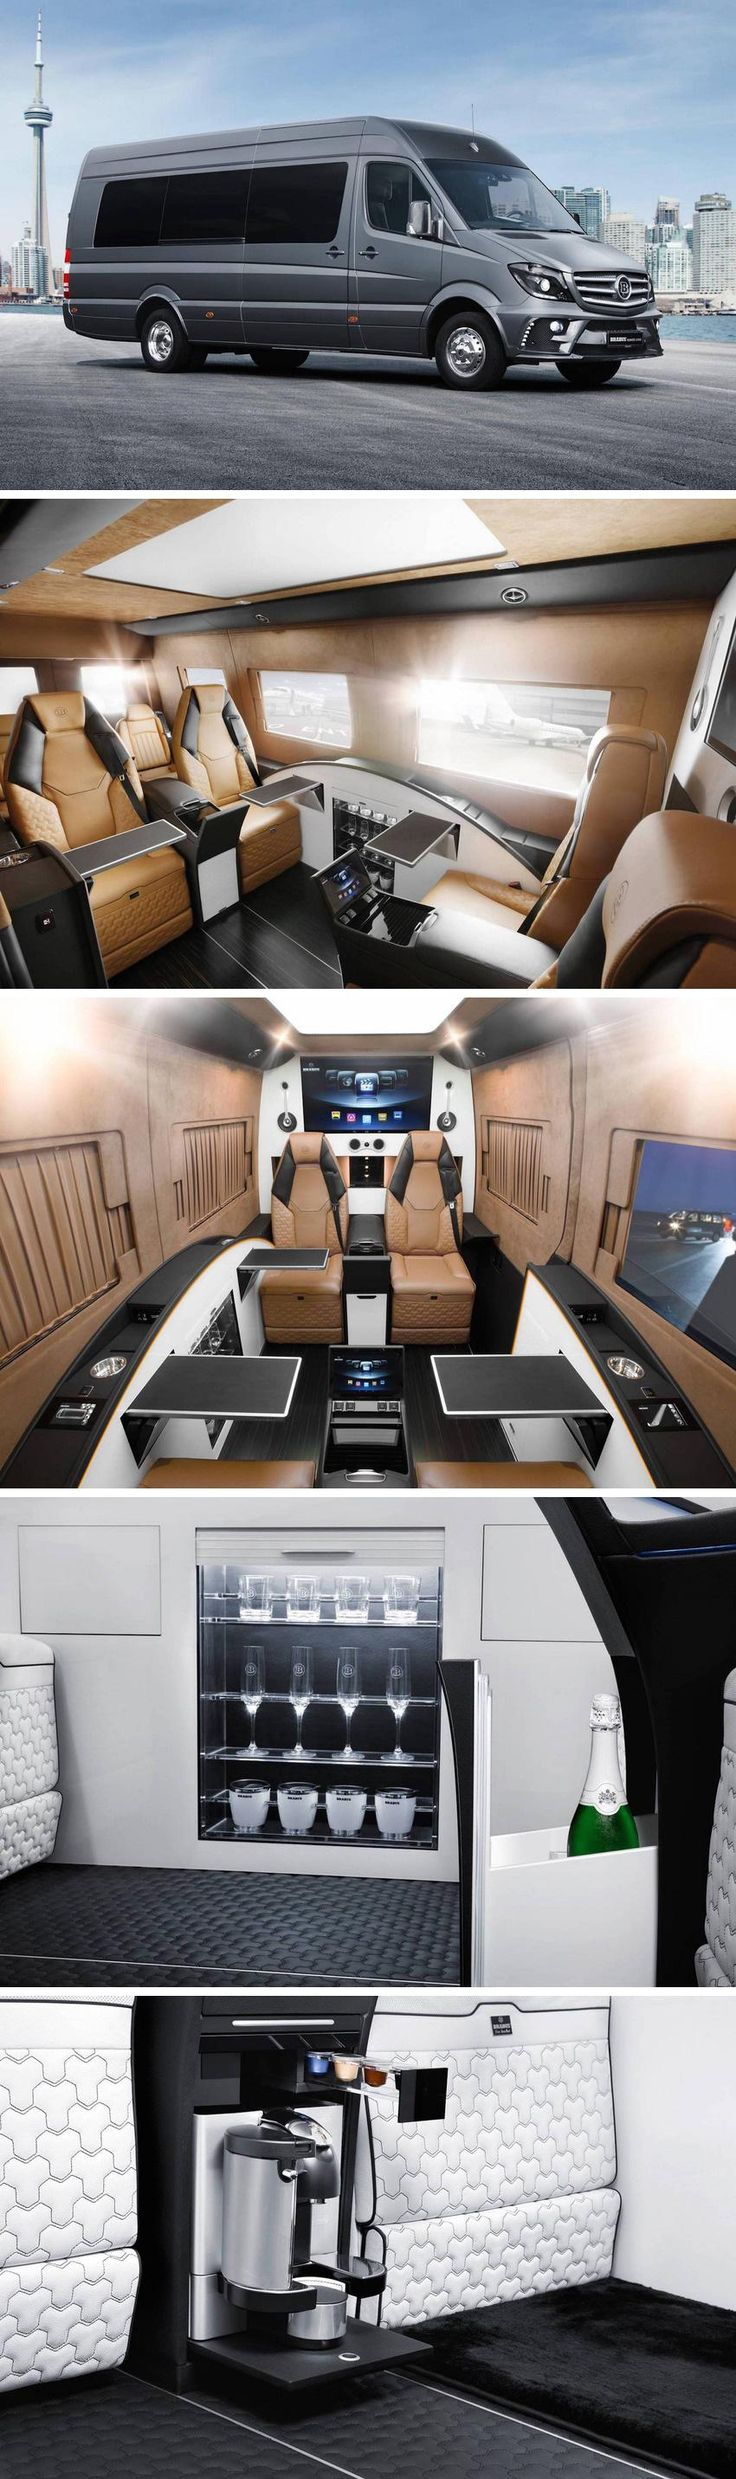 1000 ideas about luxury rv on pinterest motorhome rv interior and gmc motorhome. Black Bedroom Furniture Sets. Home Design Ideas